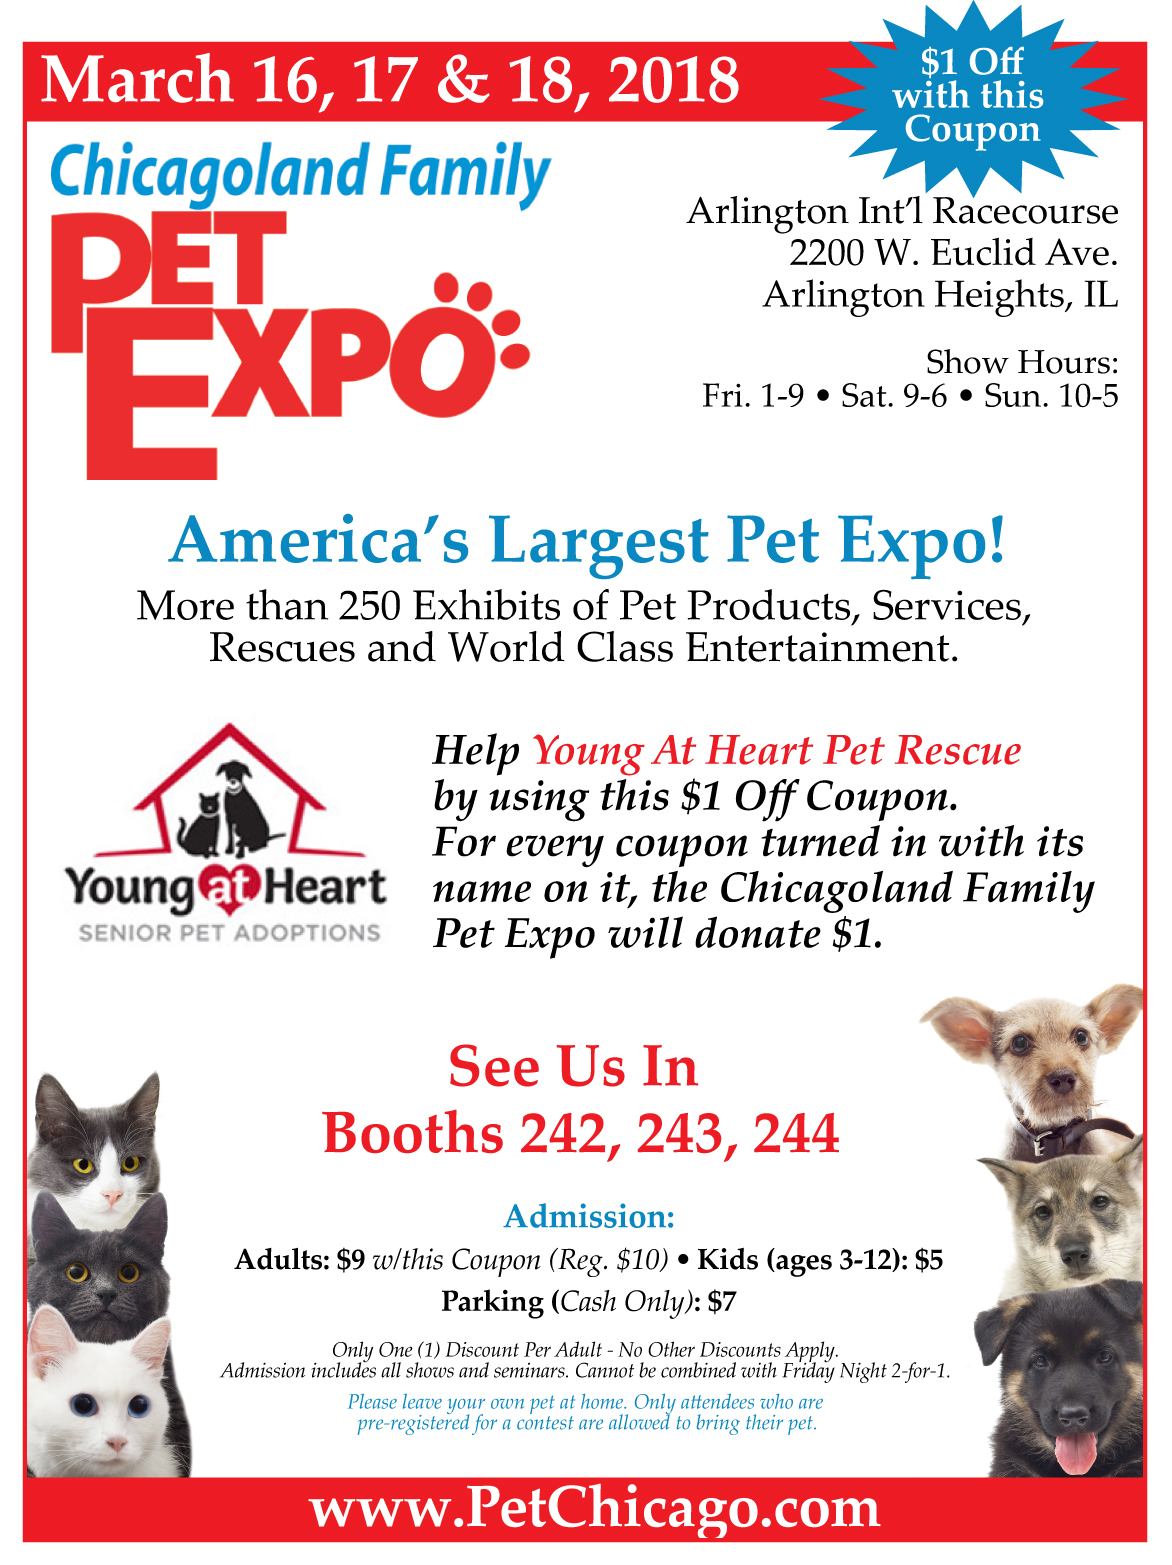 Chicagoland Famliy Pet Expo